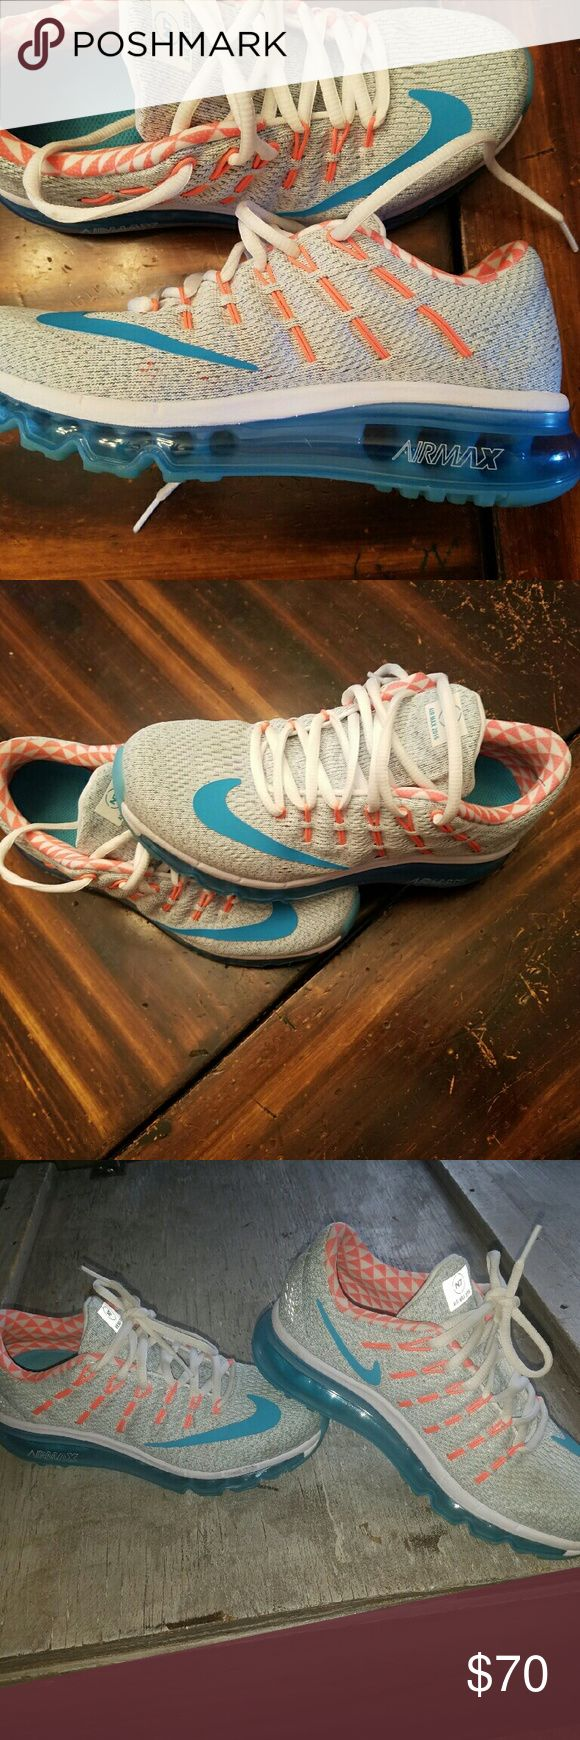 Ladies nike air max size 6.5 Flawless condition.  Worn once around house too big Nike Shoes